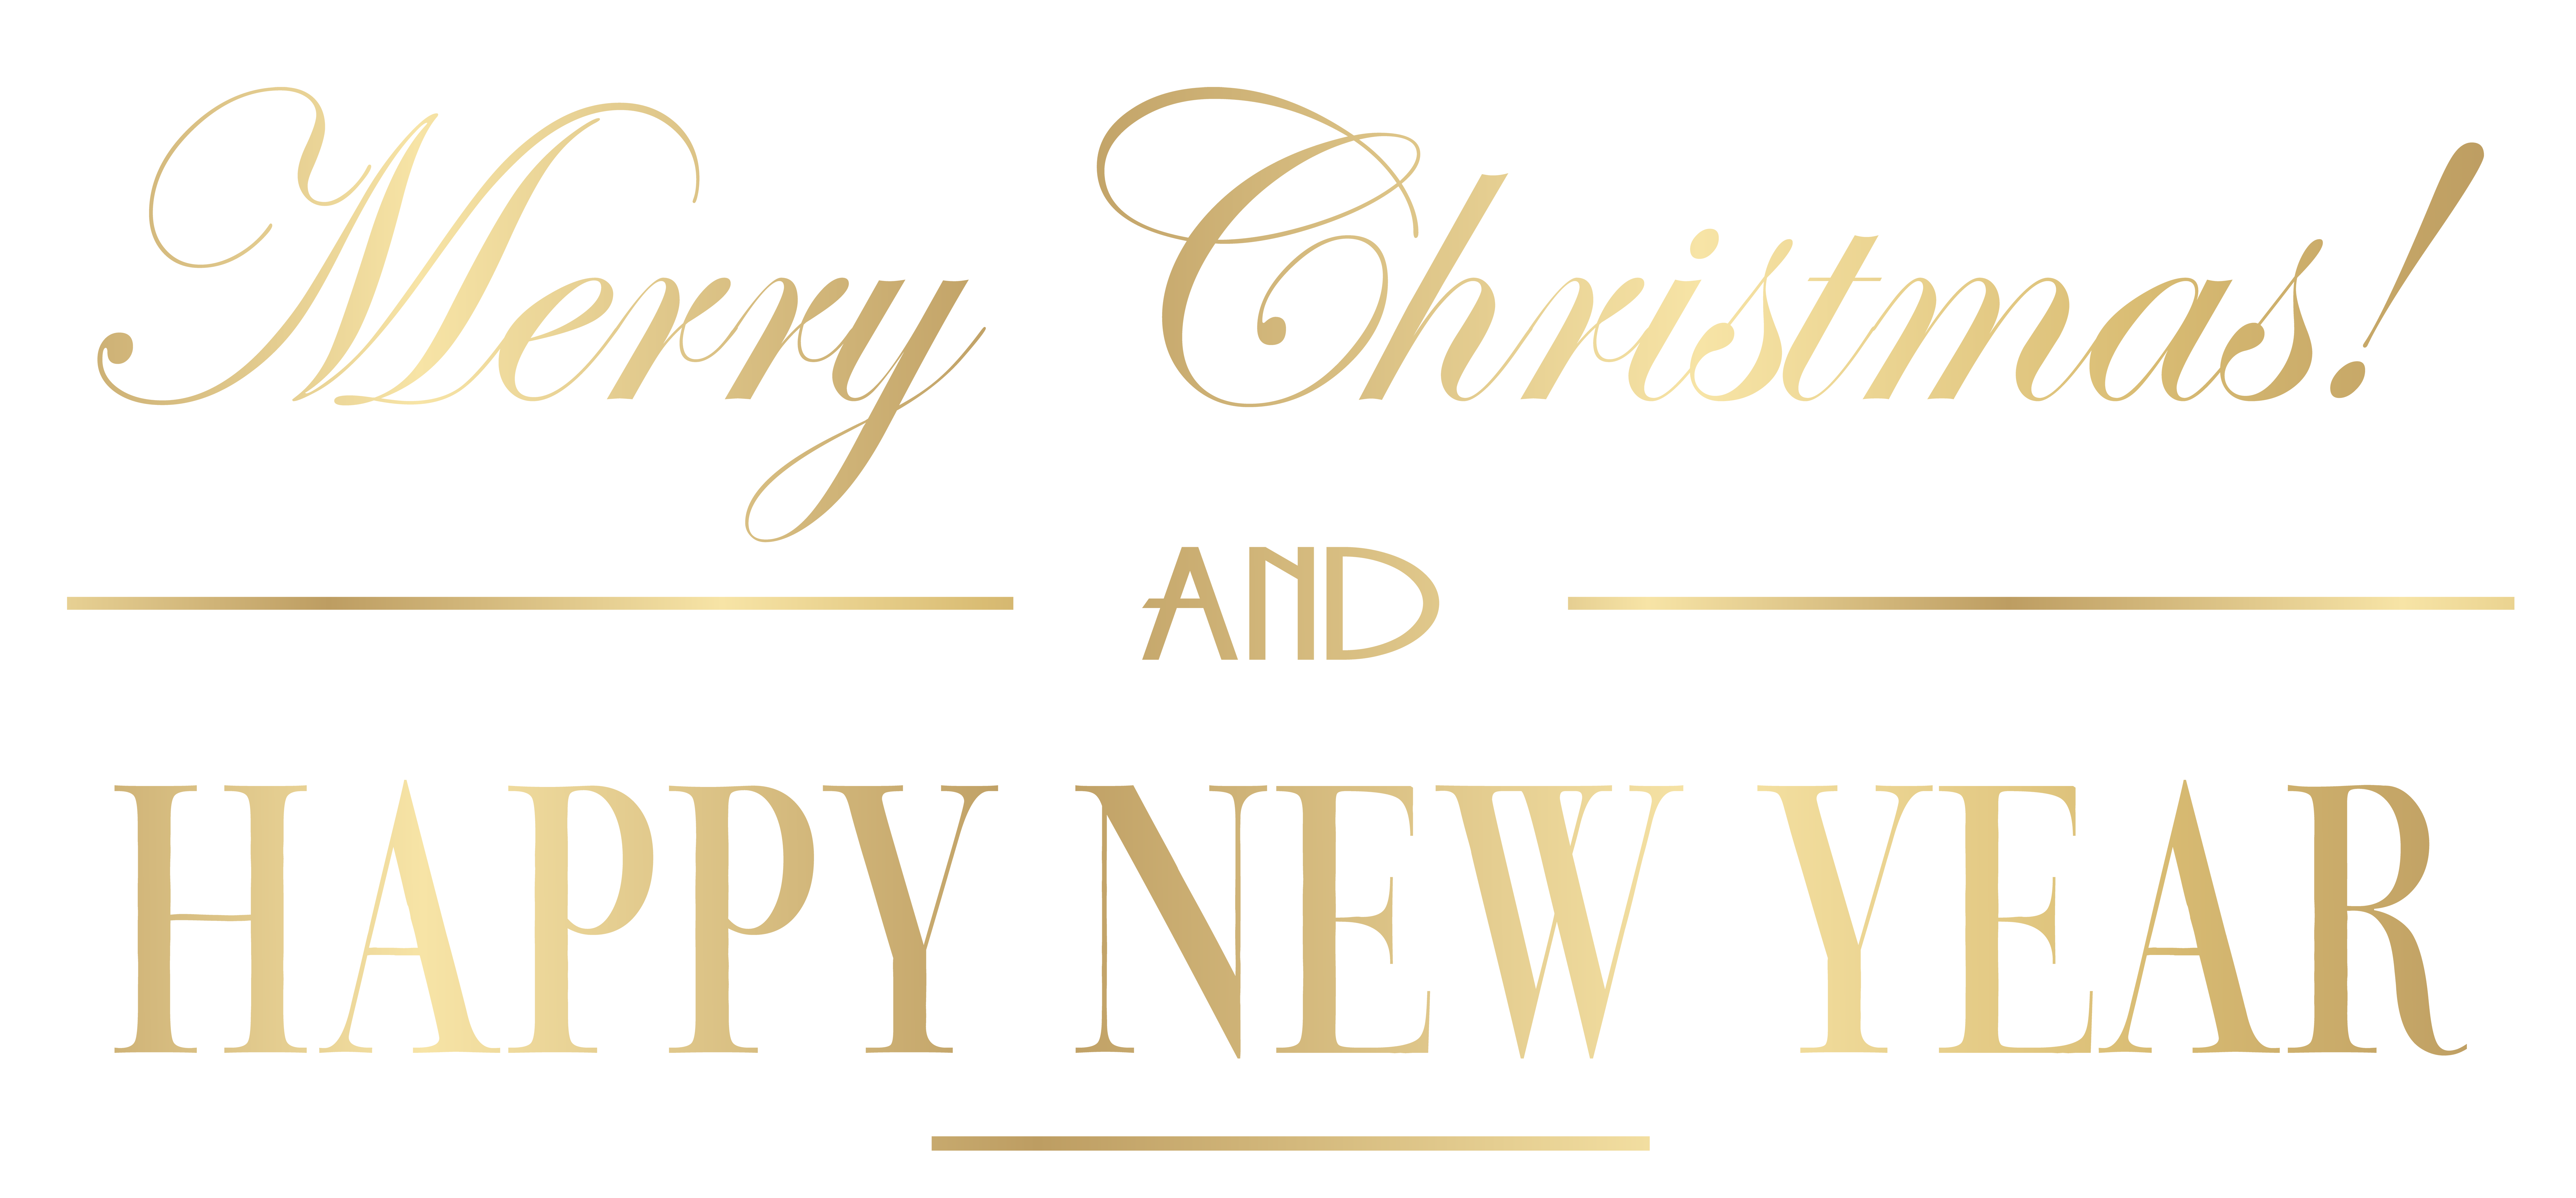 Merry christmas & happy new year clipart png royalty free stock Merry Christmas and Happy New Year PNG Clip Art Image | Gallery ... png royalty free stock